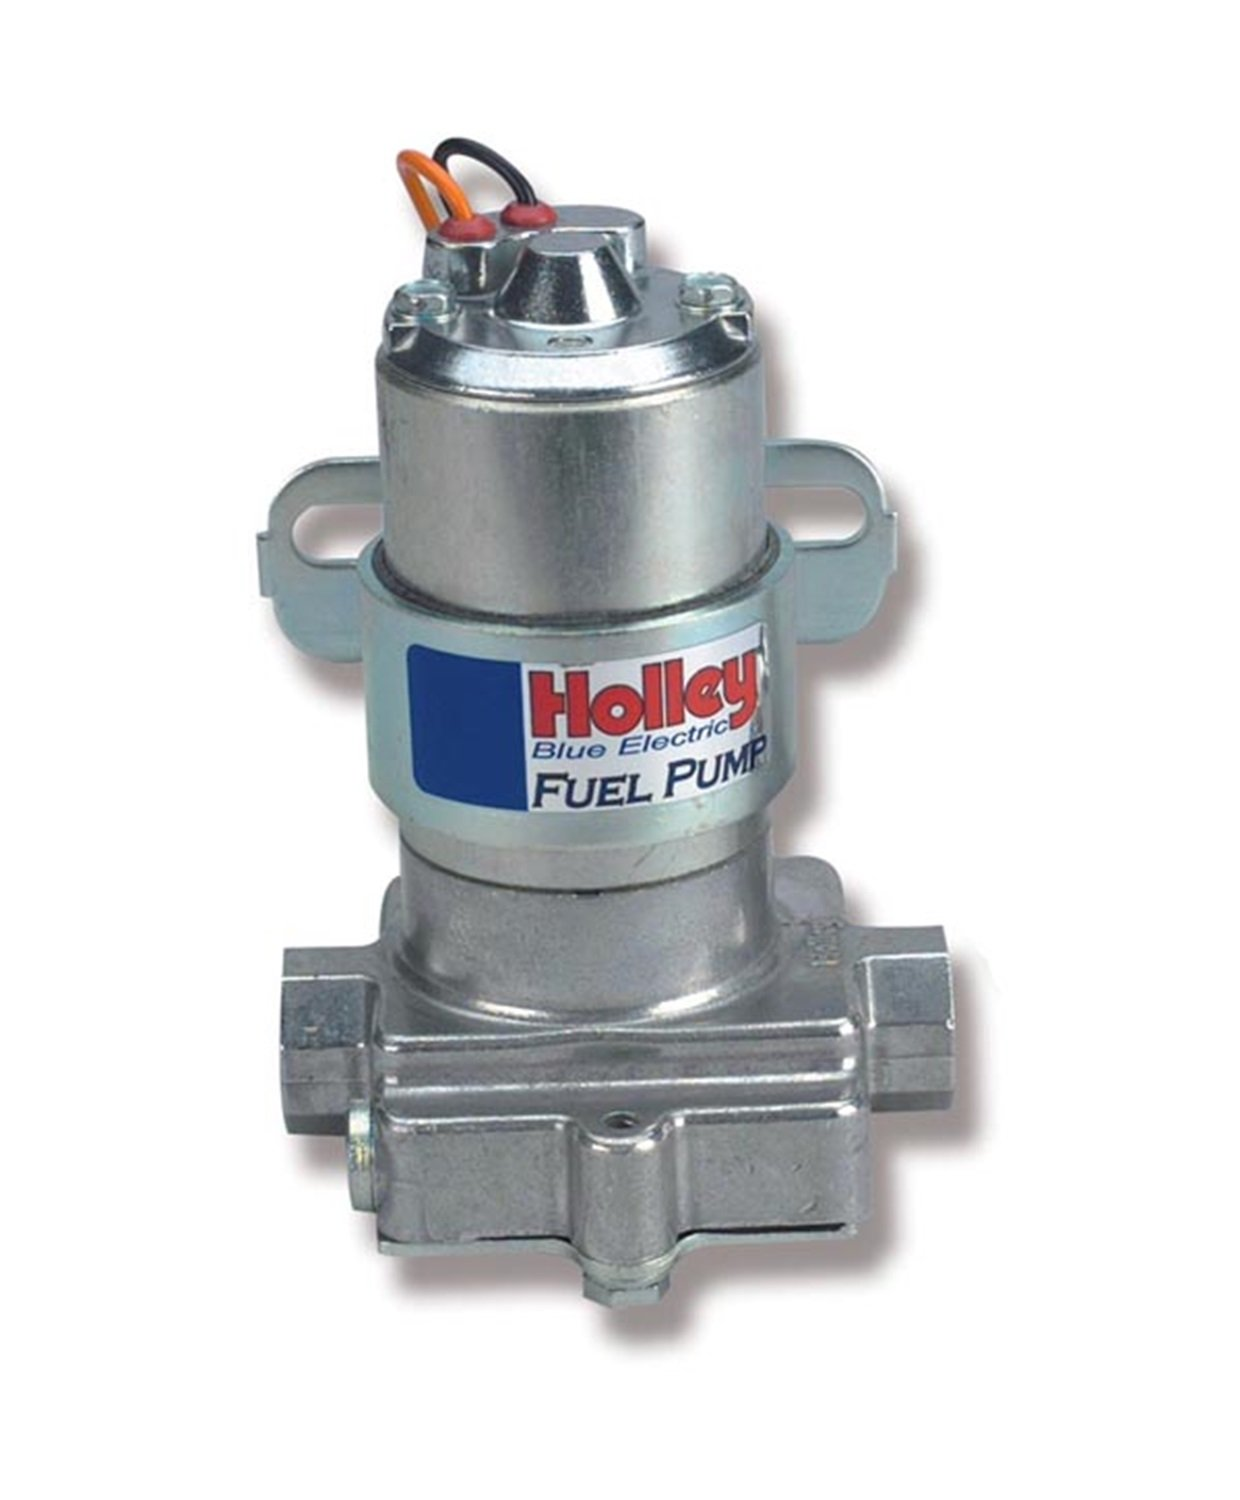 Holley 12-812-1 110 GPH Blue Electric Pump without Regulator by Holley (Image #1)